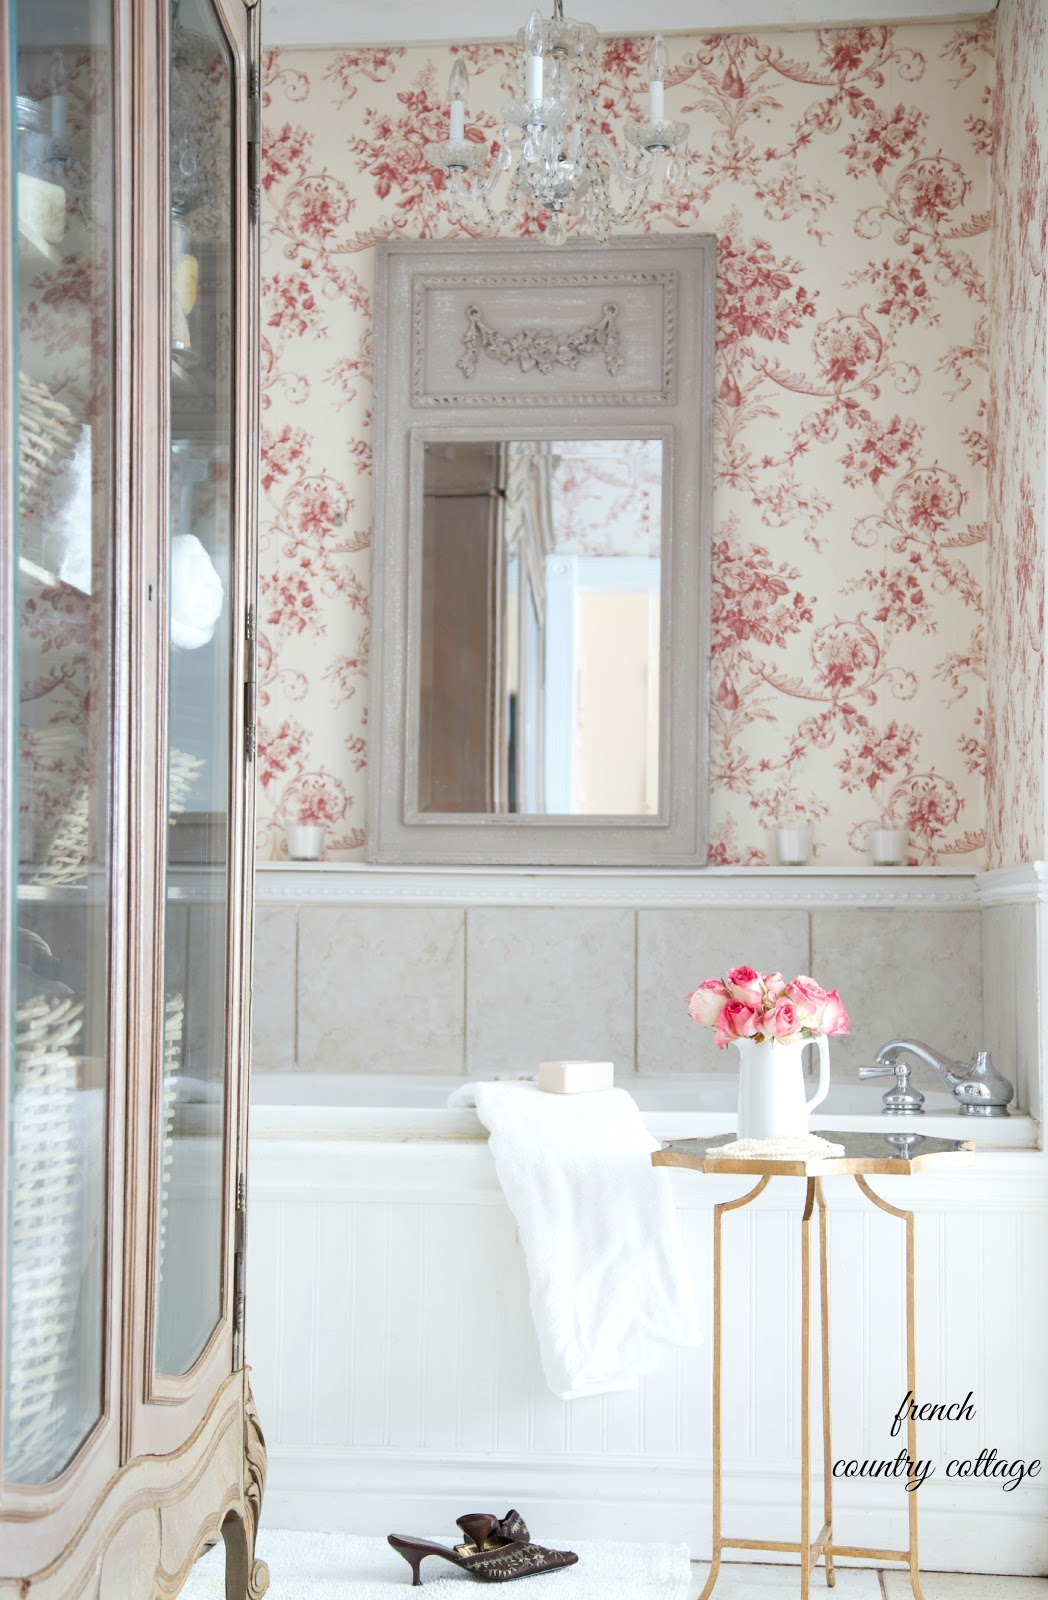 Inspiration cottage bathroom dreaming french country for French cottage bathroom design